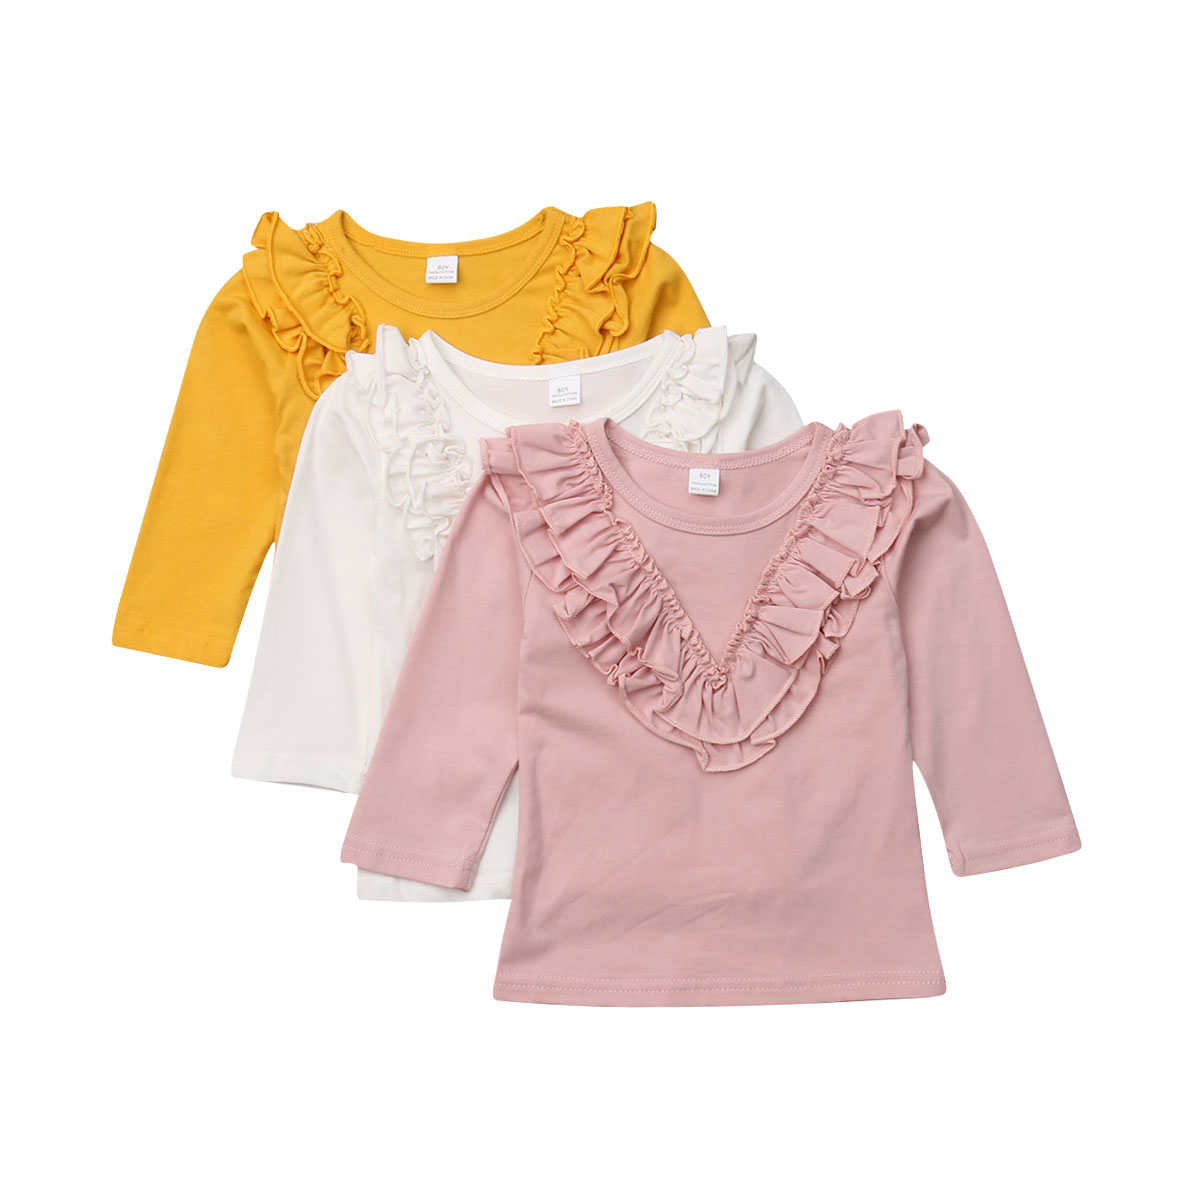 994b445e New Arrivel Ruffles Baby Girls Cotton Long Sleeve T-shirt 0-5 Year Autumn